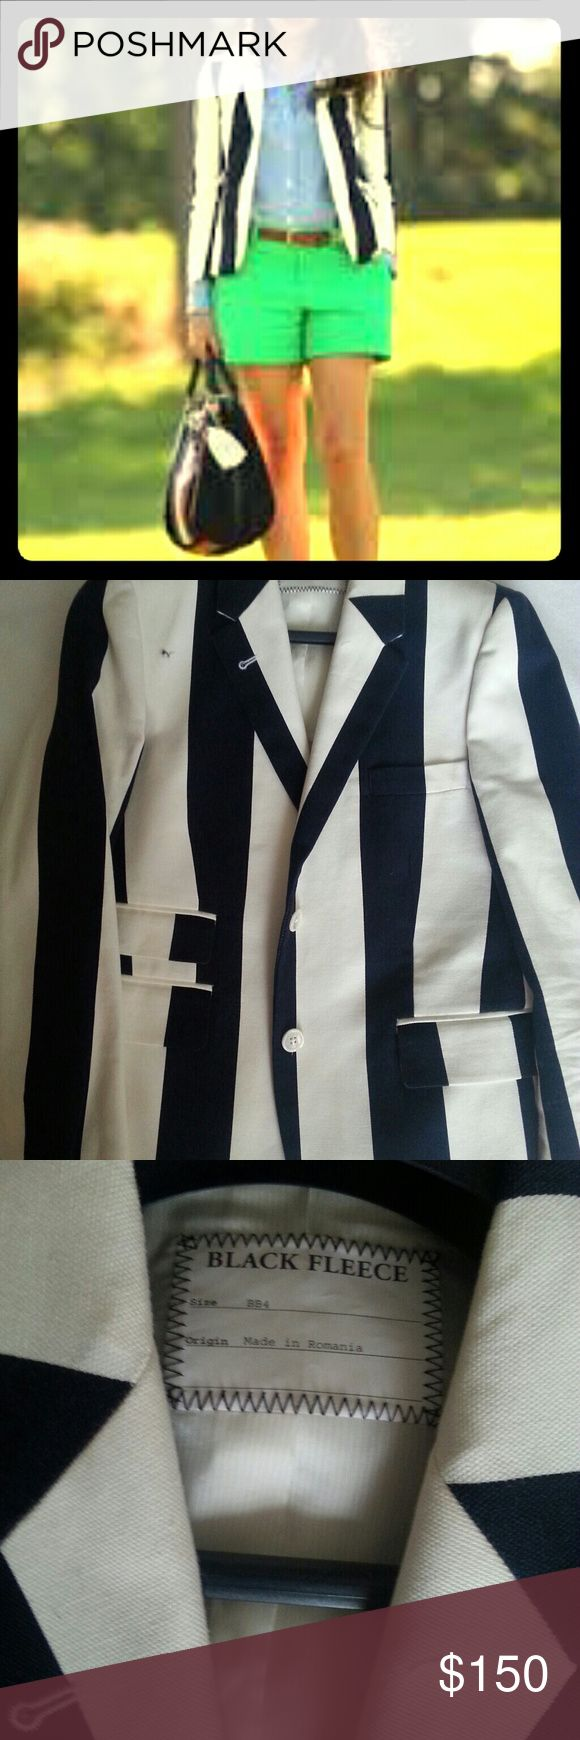 BrooKs Brothers Blue & Ivory Striped Blazer Brooks Brothers Black Fleece Label Schoolboy Blazer in thick vertical rugby stripes. Size BB4 which is a 10. Brooks Brothers Jackets & Coats Blazers